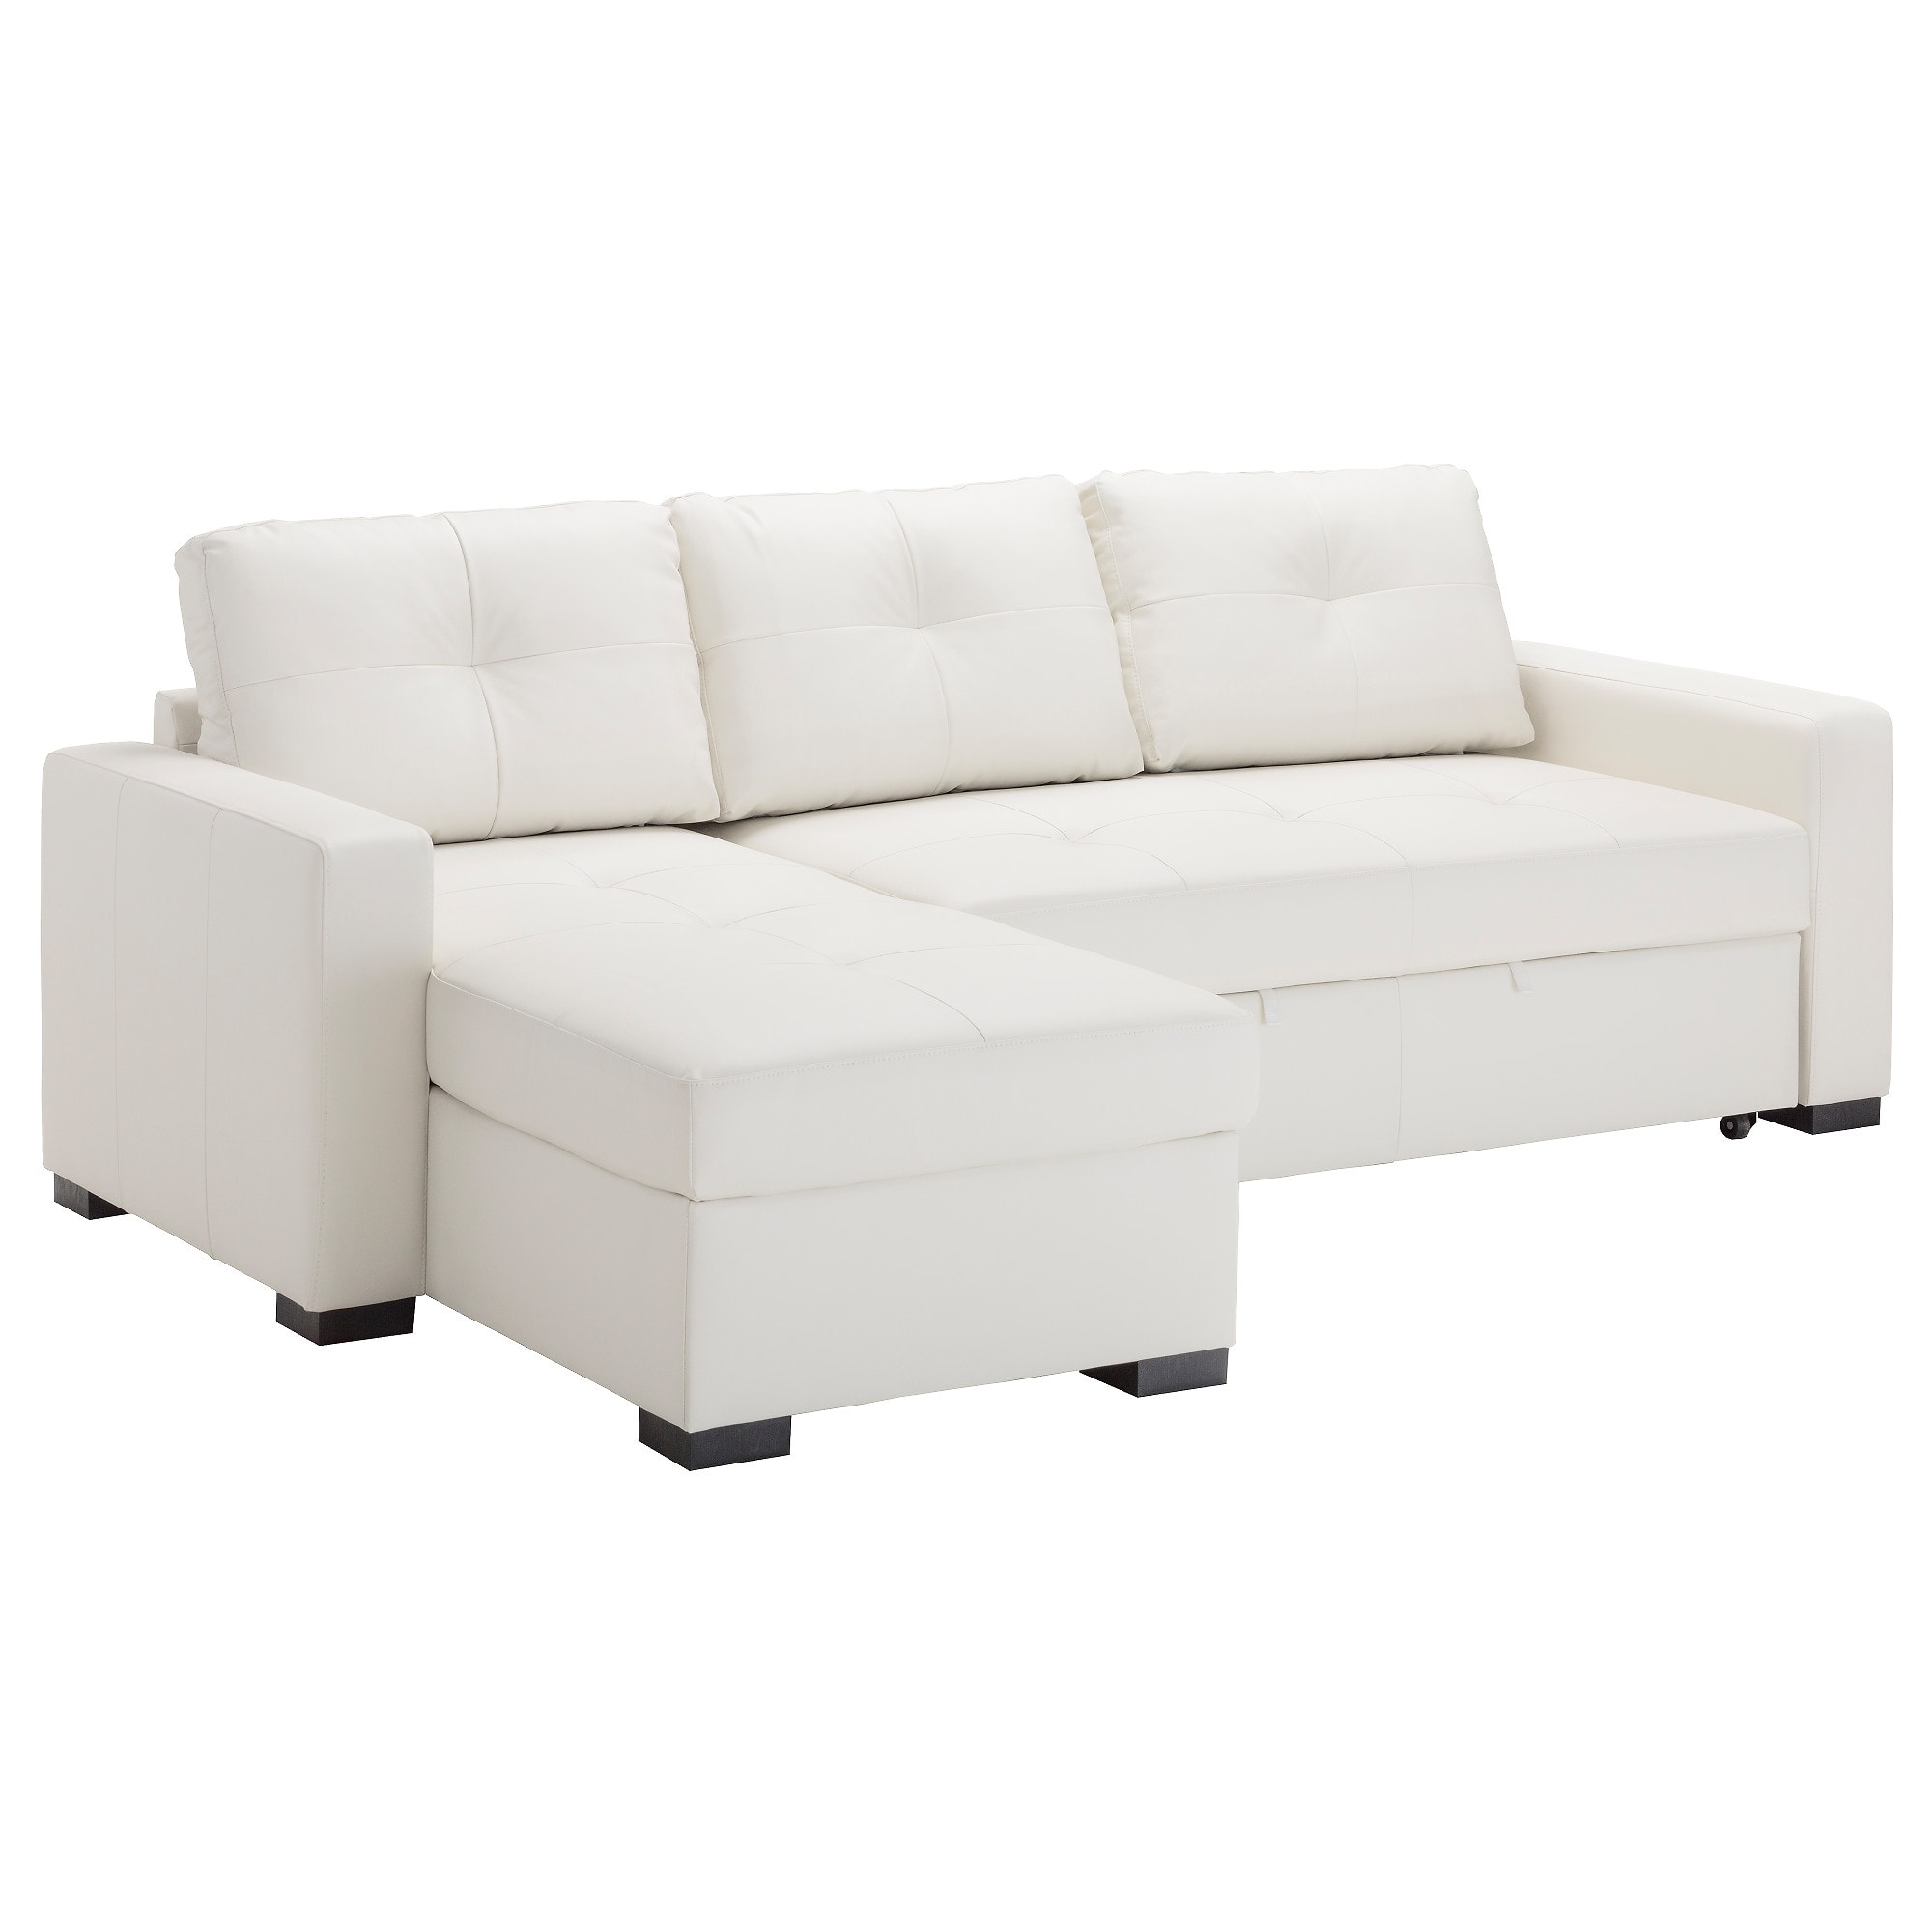 Sofas Cama En Ikea D0dg Ragunda Corner sofa Bed with Storage Kimstad Off White Ikea